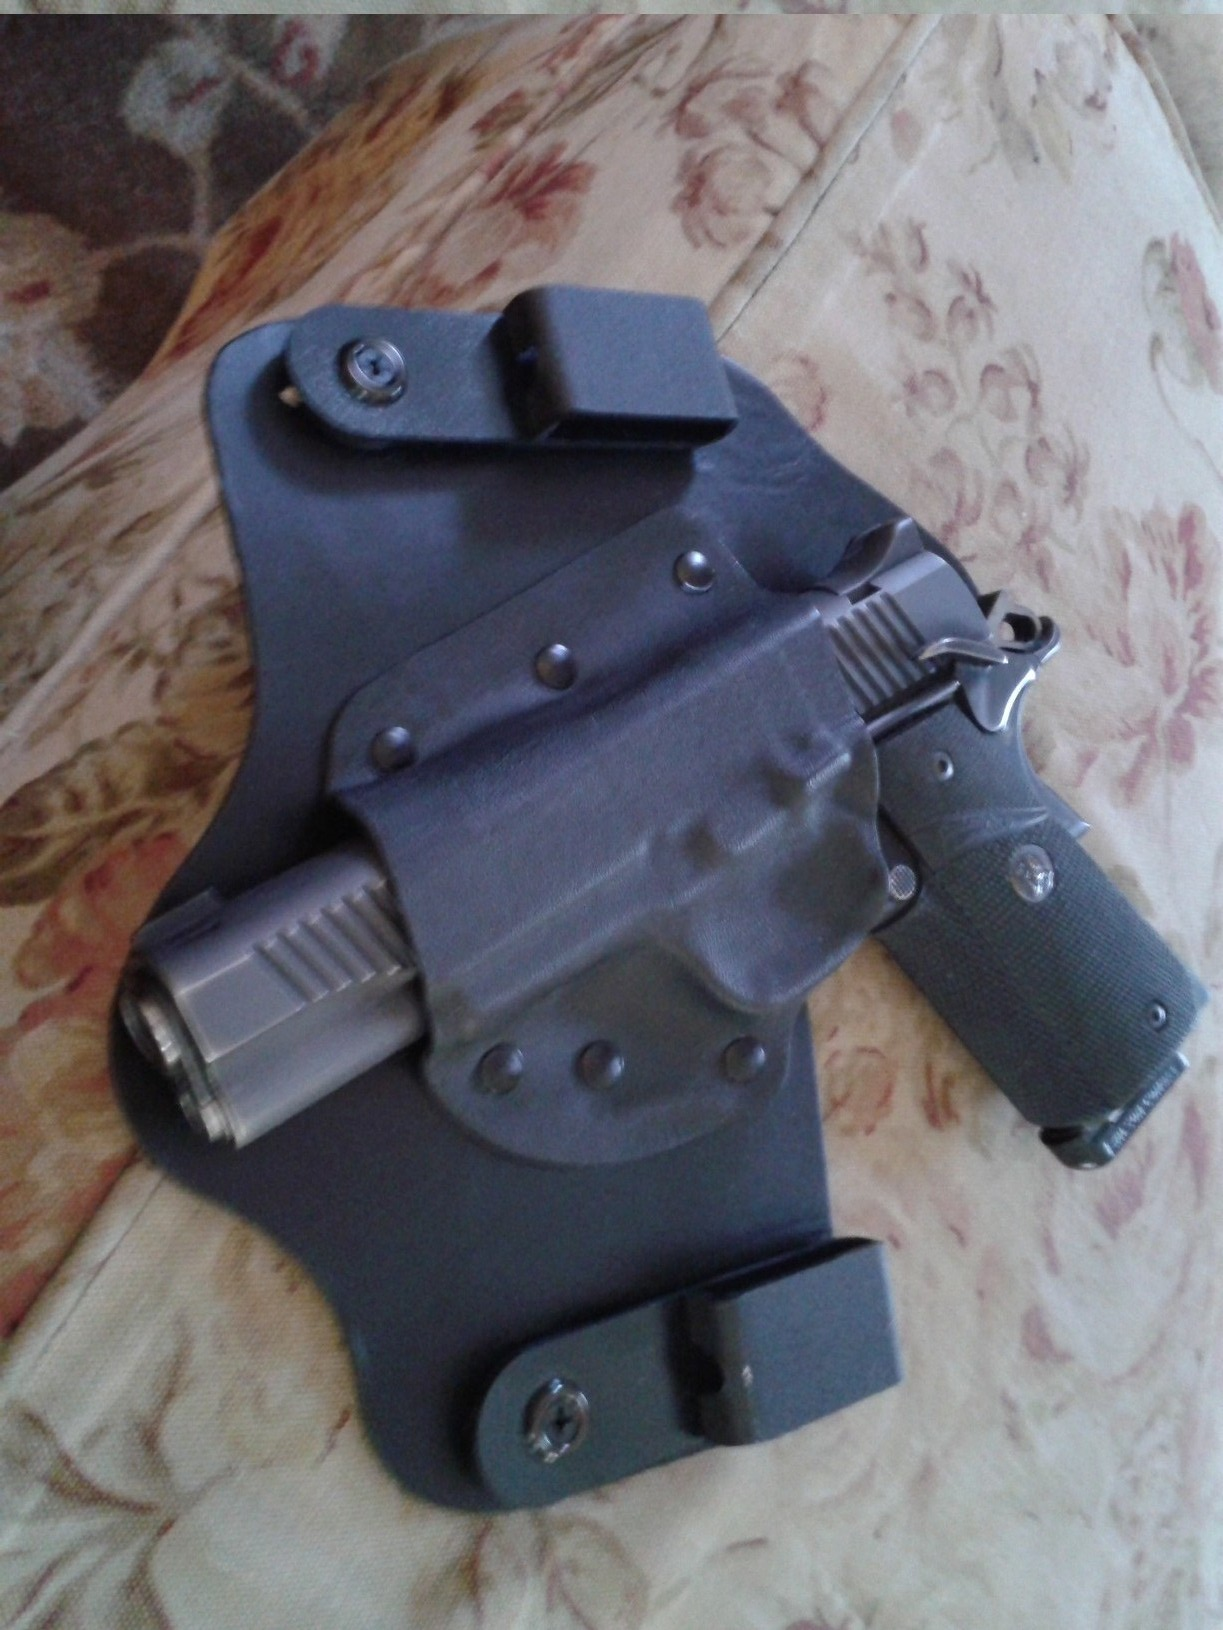 Theis Holsters - Custom Made Concealed Carry Holsters-holster.jpg